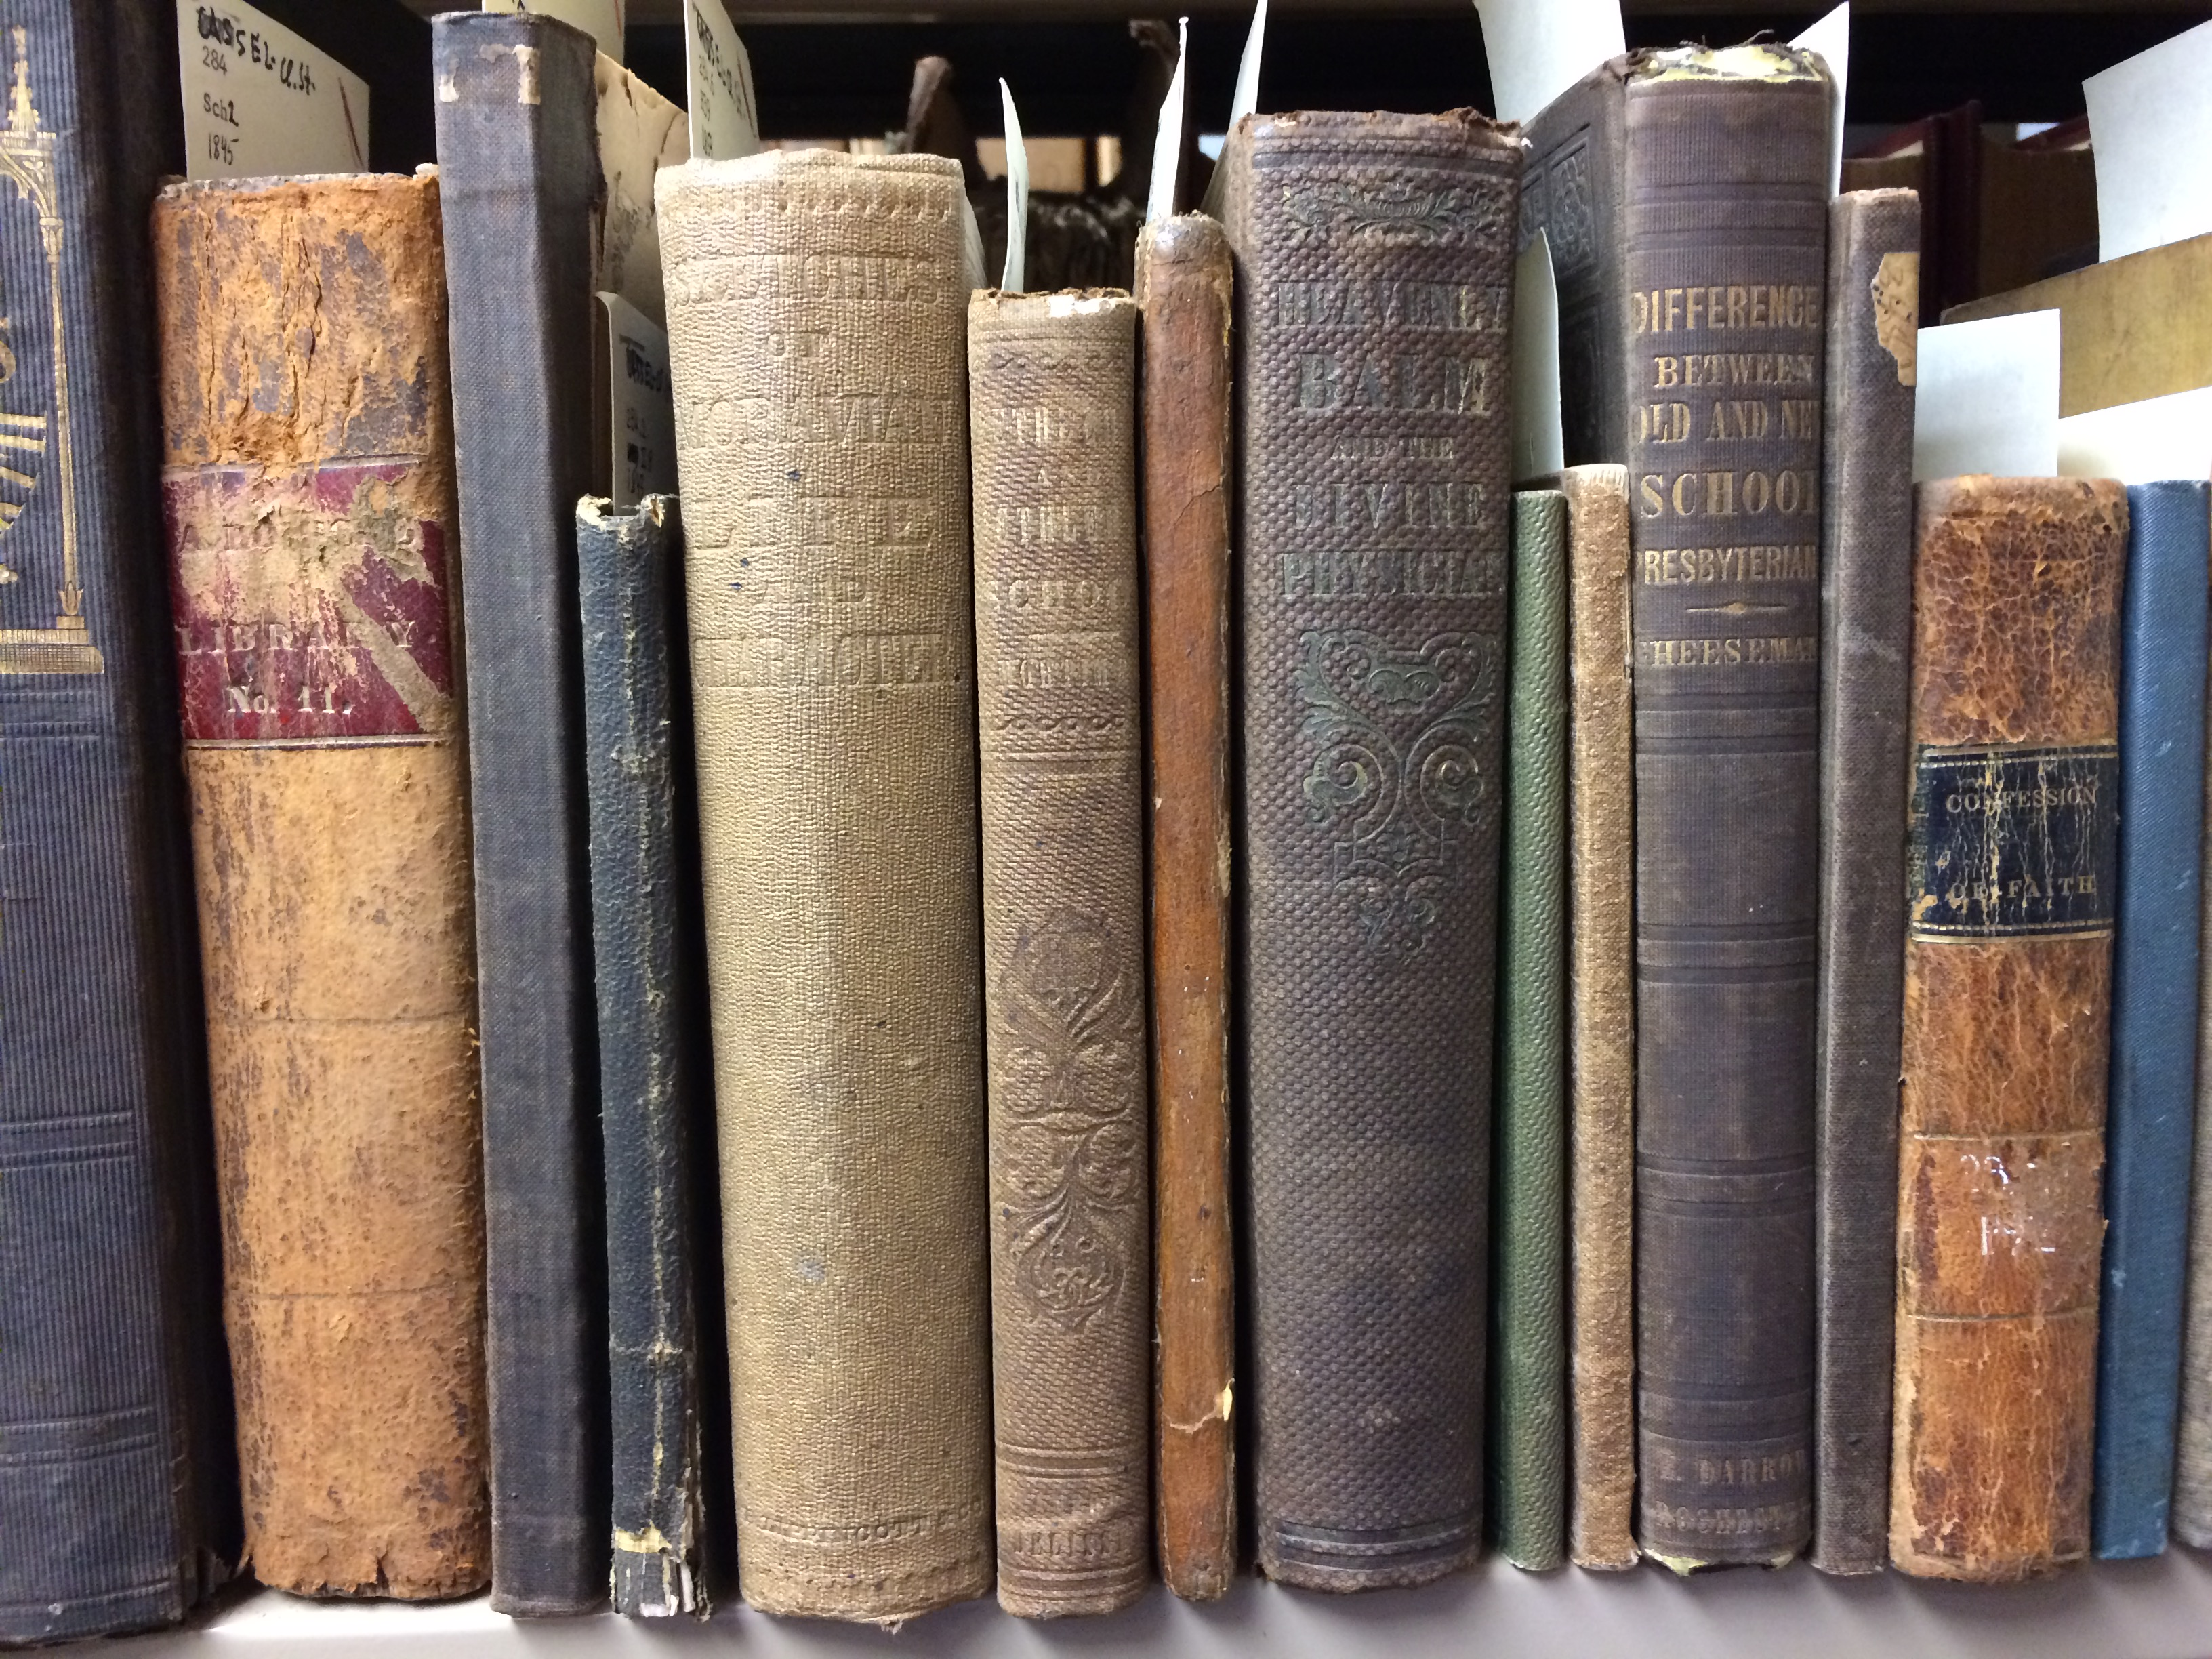 Shelf of Rarebooks